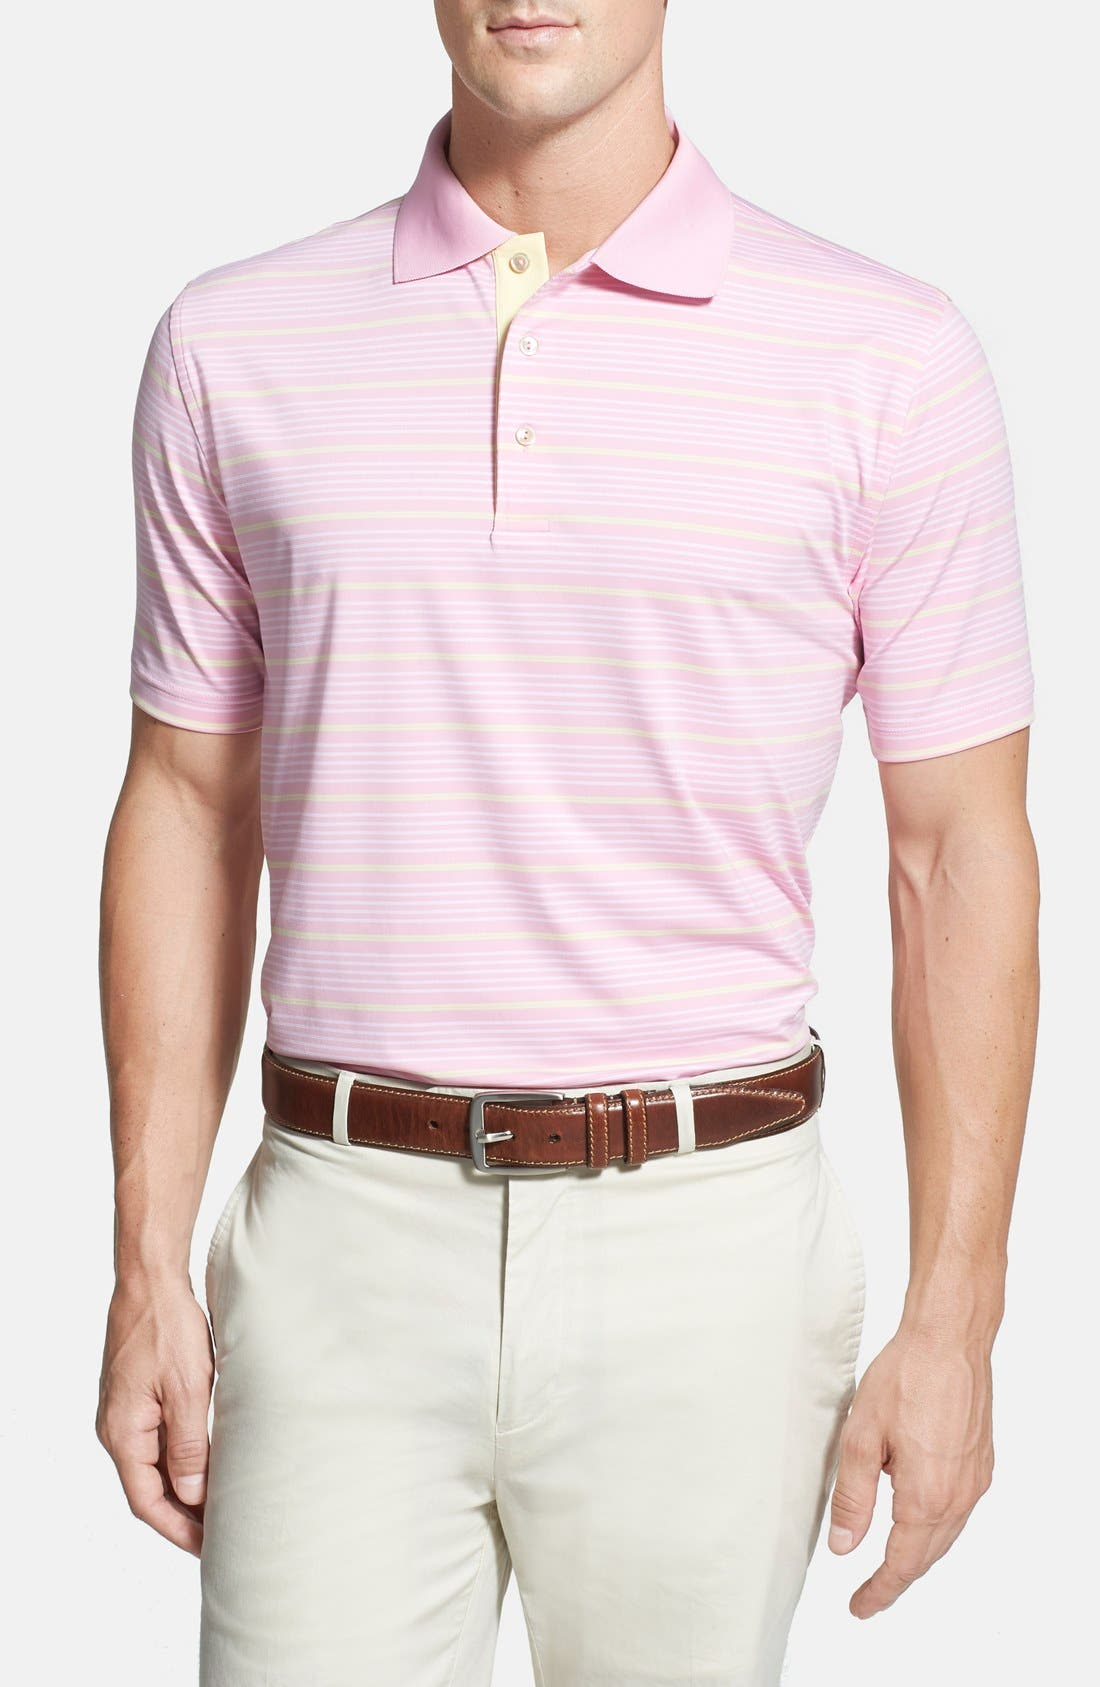 'Staley' Moisture Wicking Polo,                             Main thumbnail 1, color,                             Bermuda Pink